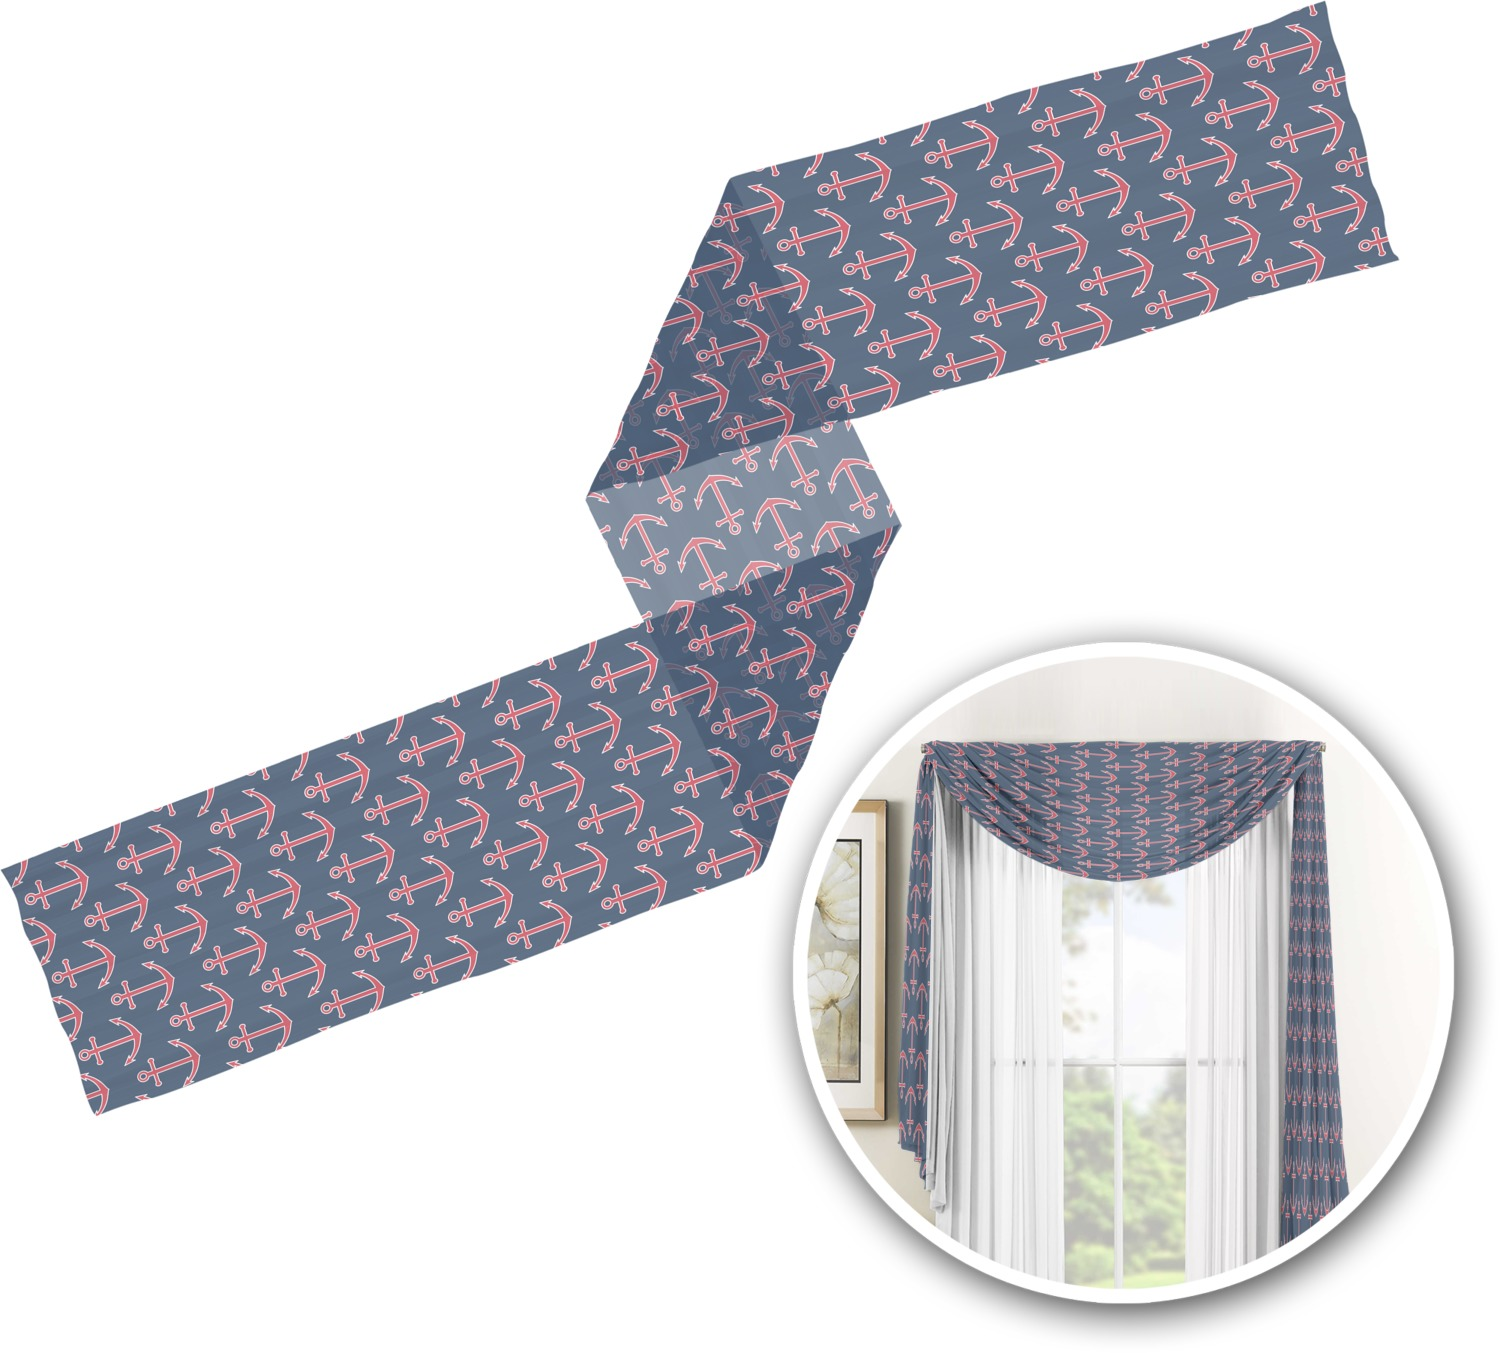 Nautical Anchors Amp Stripes Window Sheer Scarf Valance